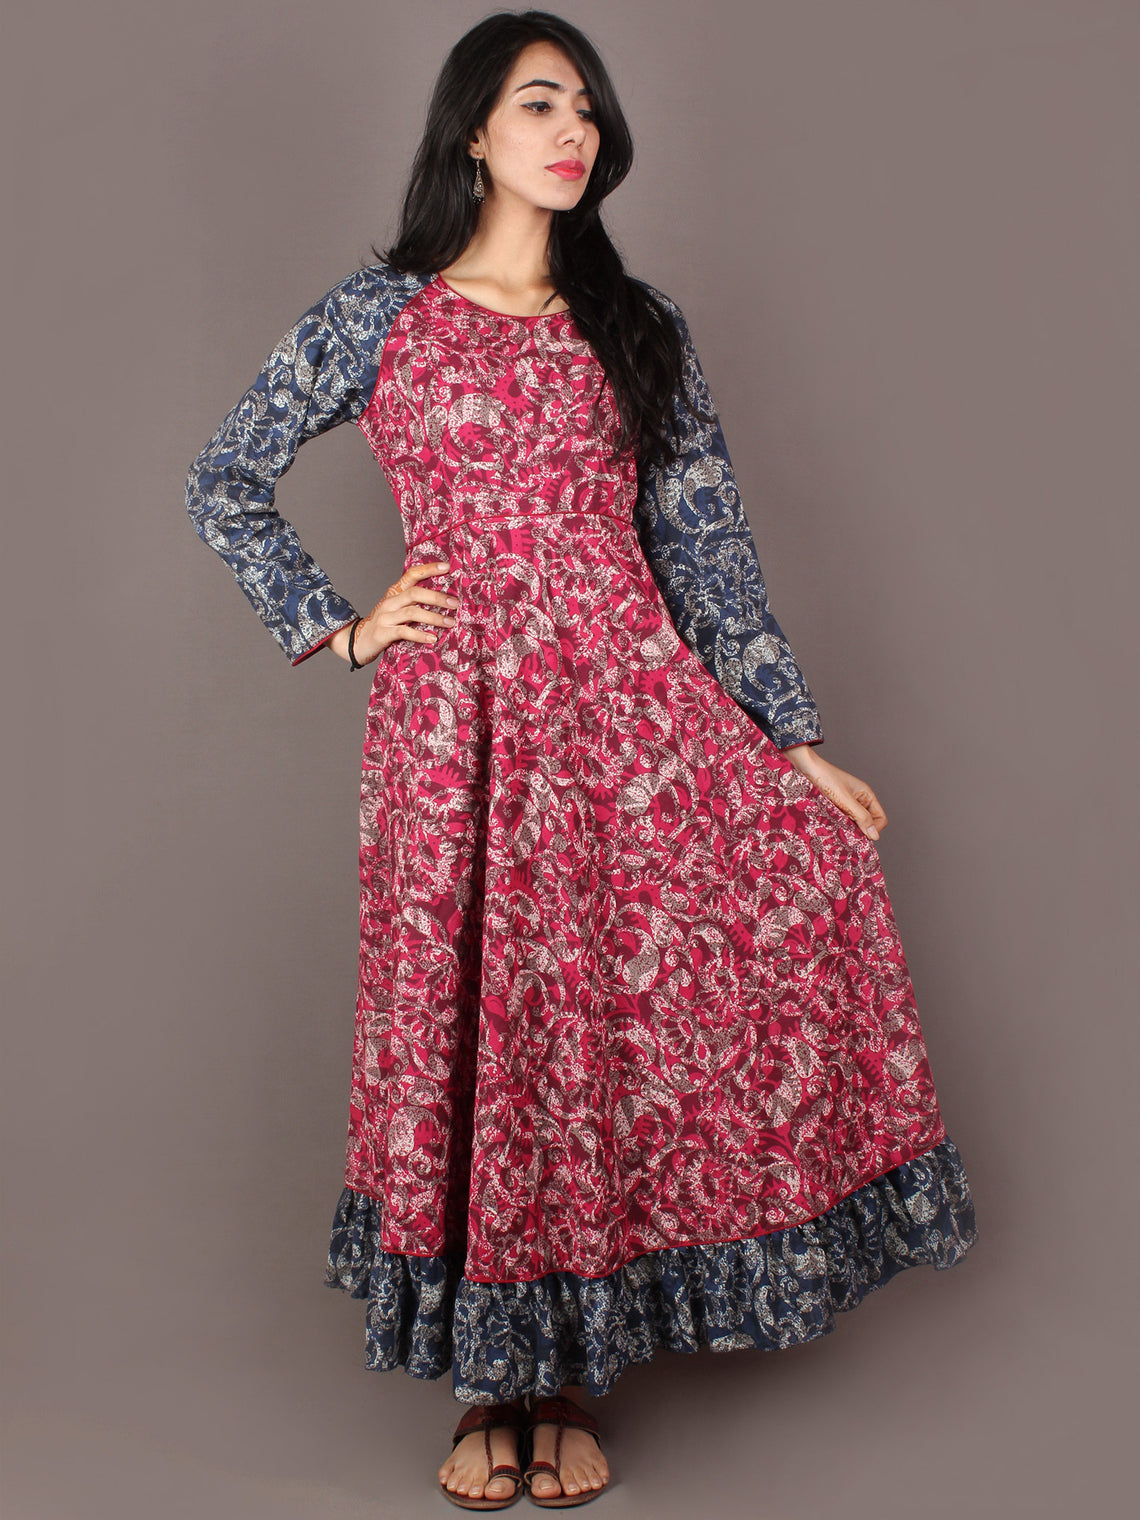 Pink Indigo Beige Ivory Hand Block Printed Long Cotton Dress With Gather - D0641308